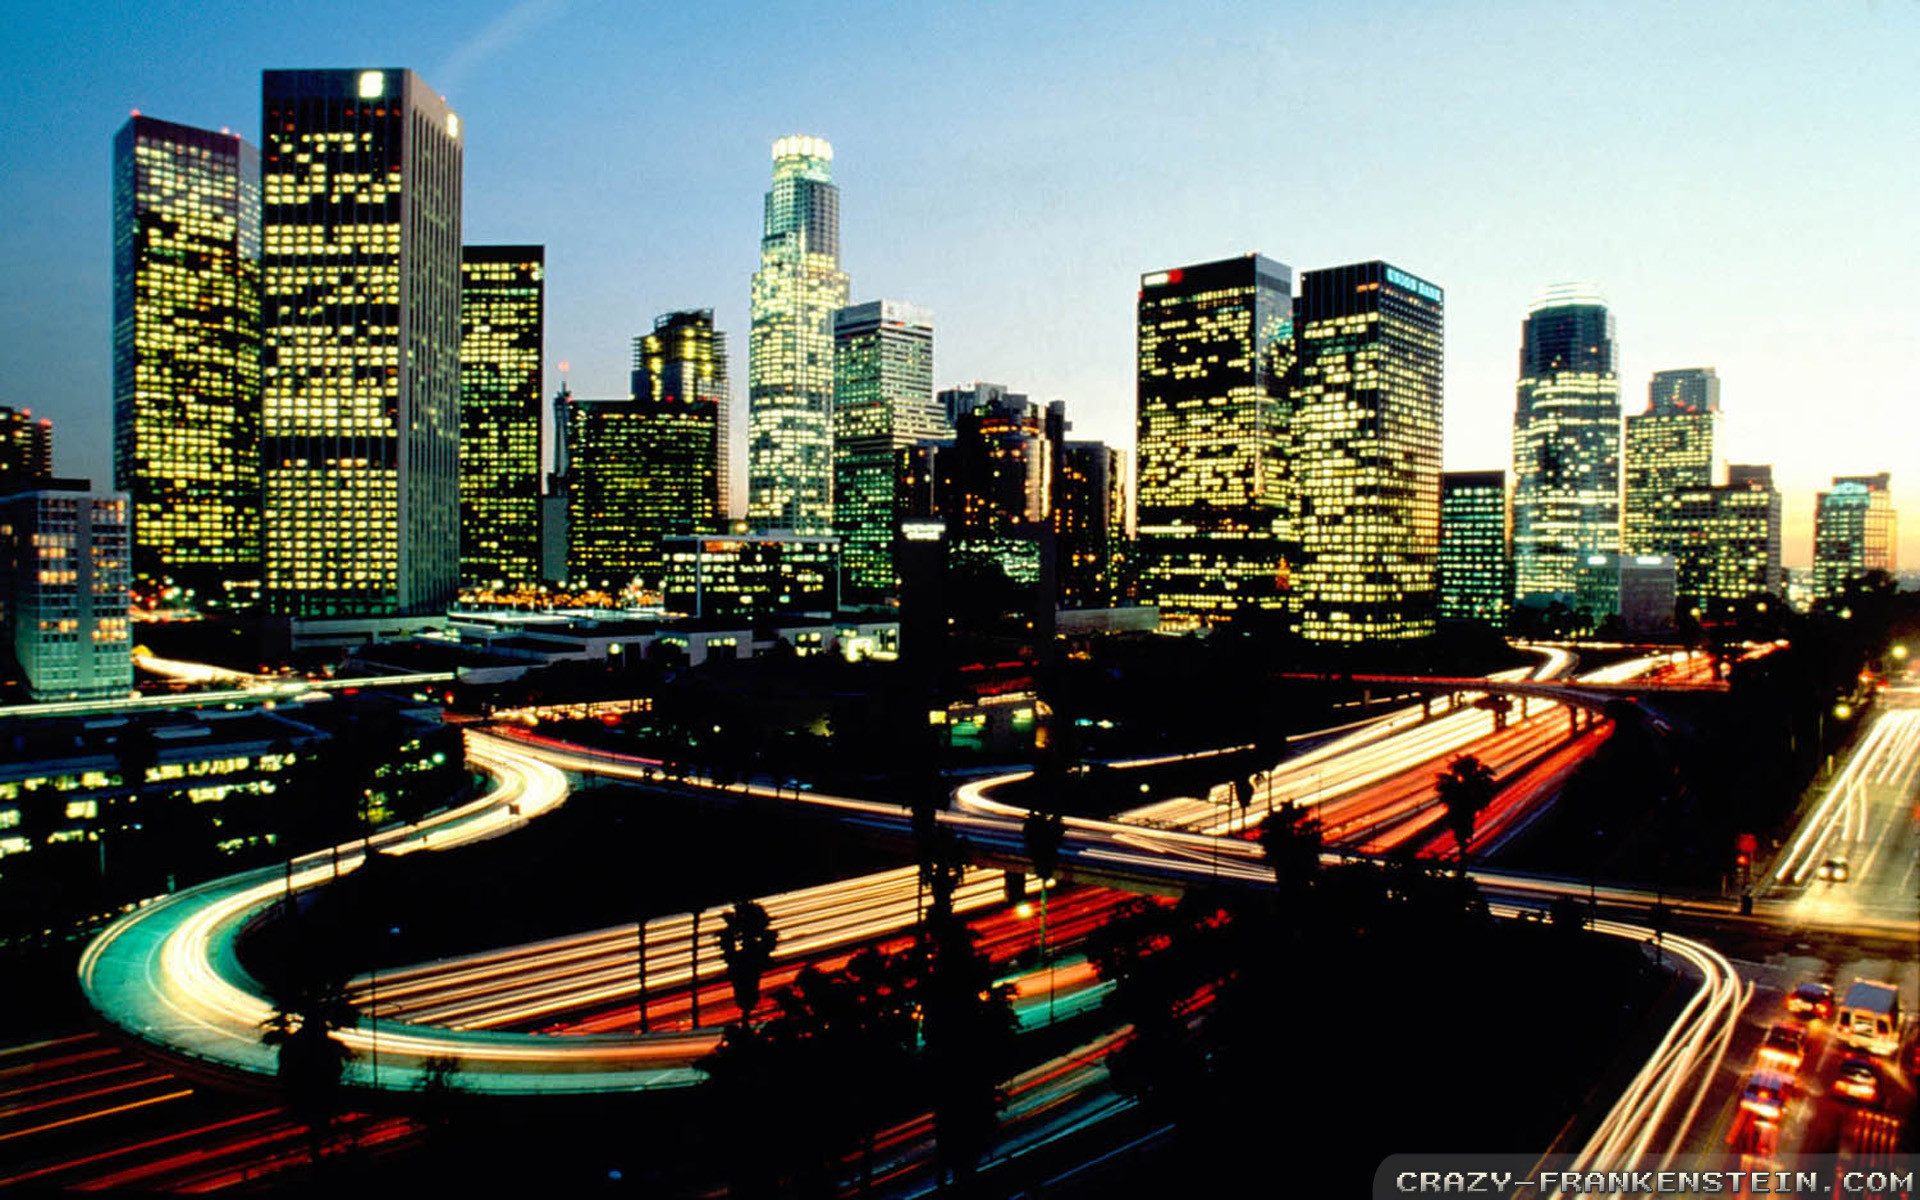 1920x1200 Wallpaper: Sunset On Los Angeles City Resolution: 1024x768 | 1280x1024 |  1600x1200. Widescreen Res: 1440x900 | 1680x1050 |